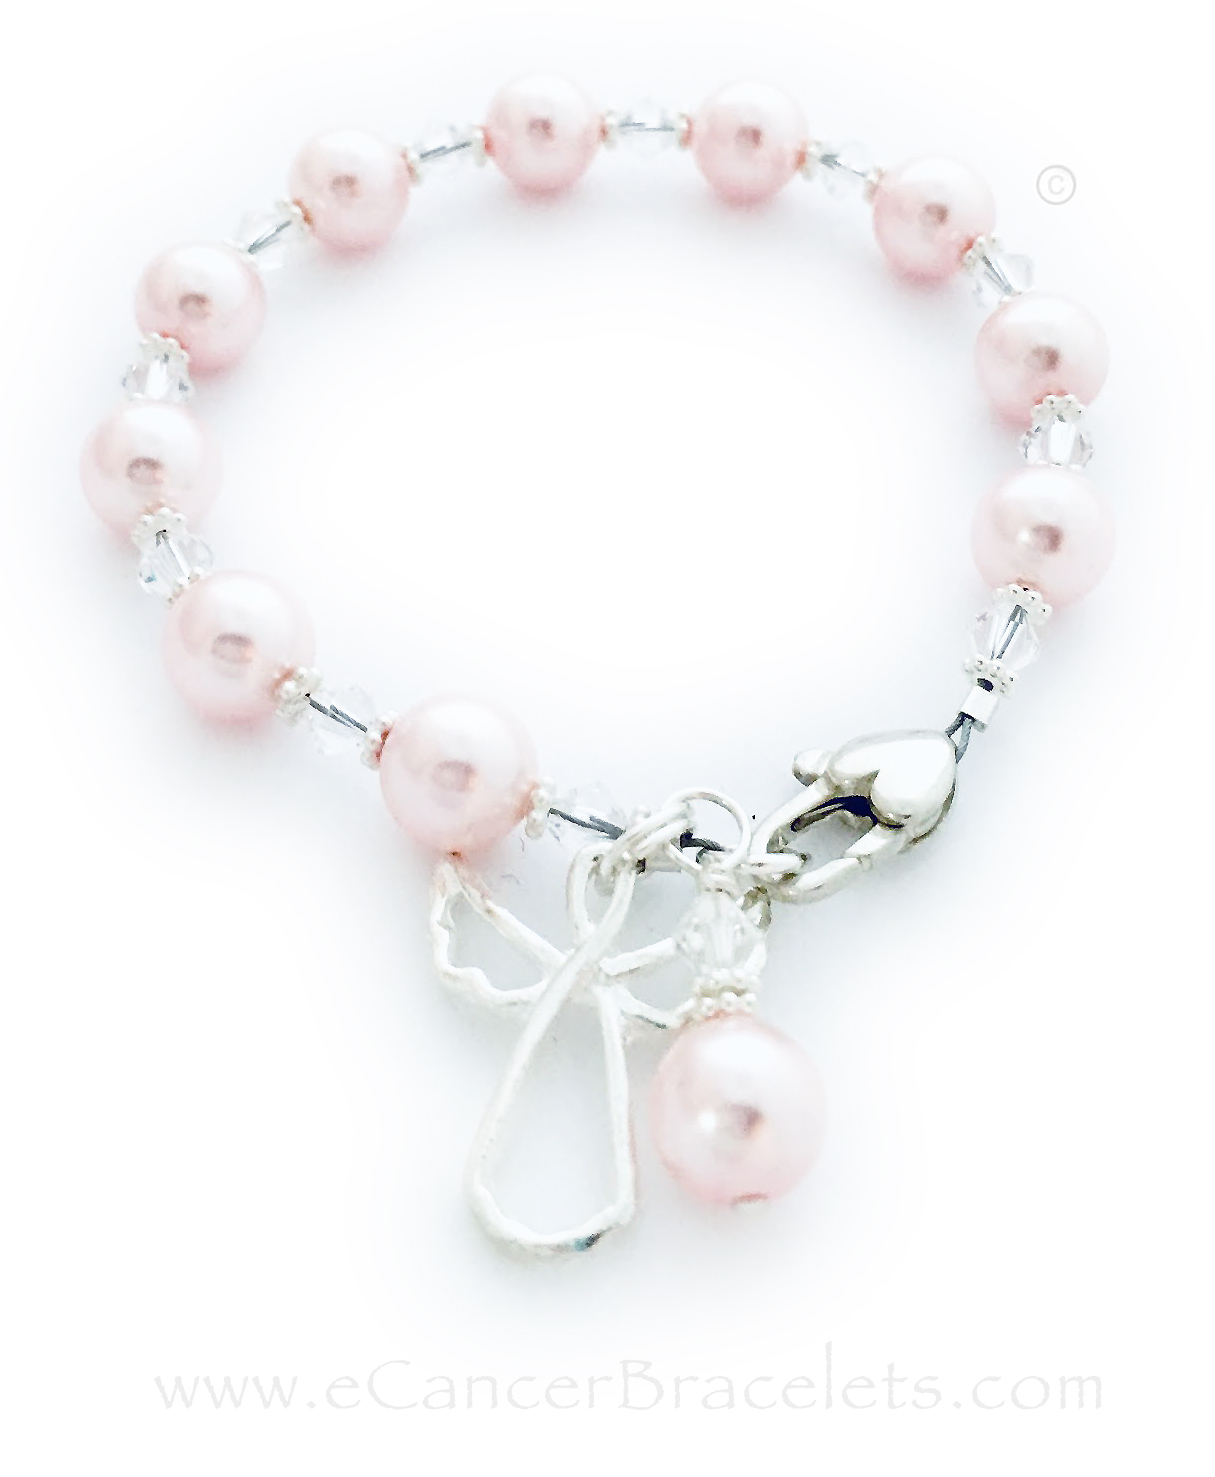 Guardian Angel Bracelet shown with Pink Swarovski Pearls. The charms shown come with the bracelet. *Shown with an upgraded Heart Lobster Claw Clasp.*